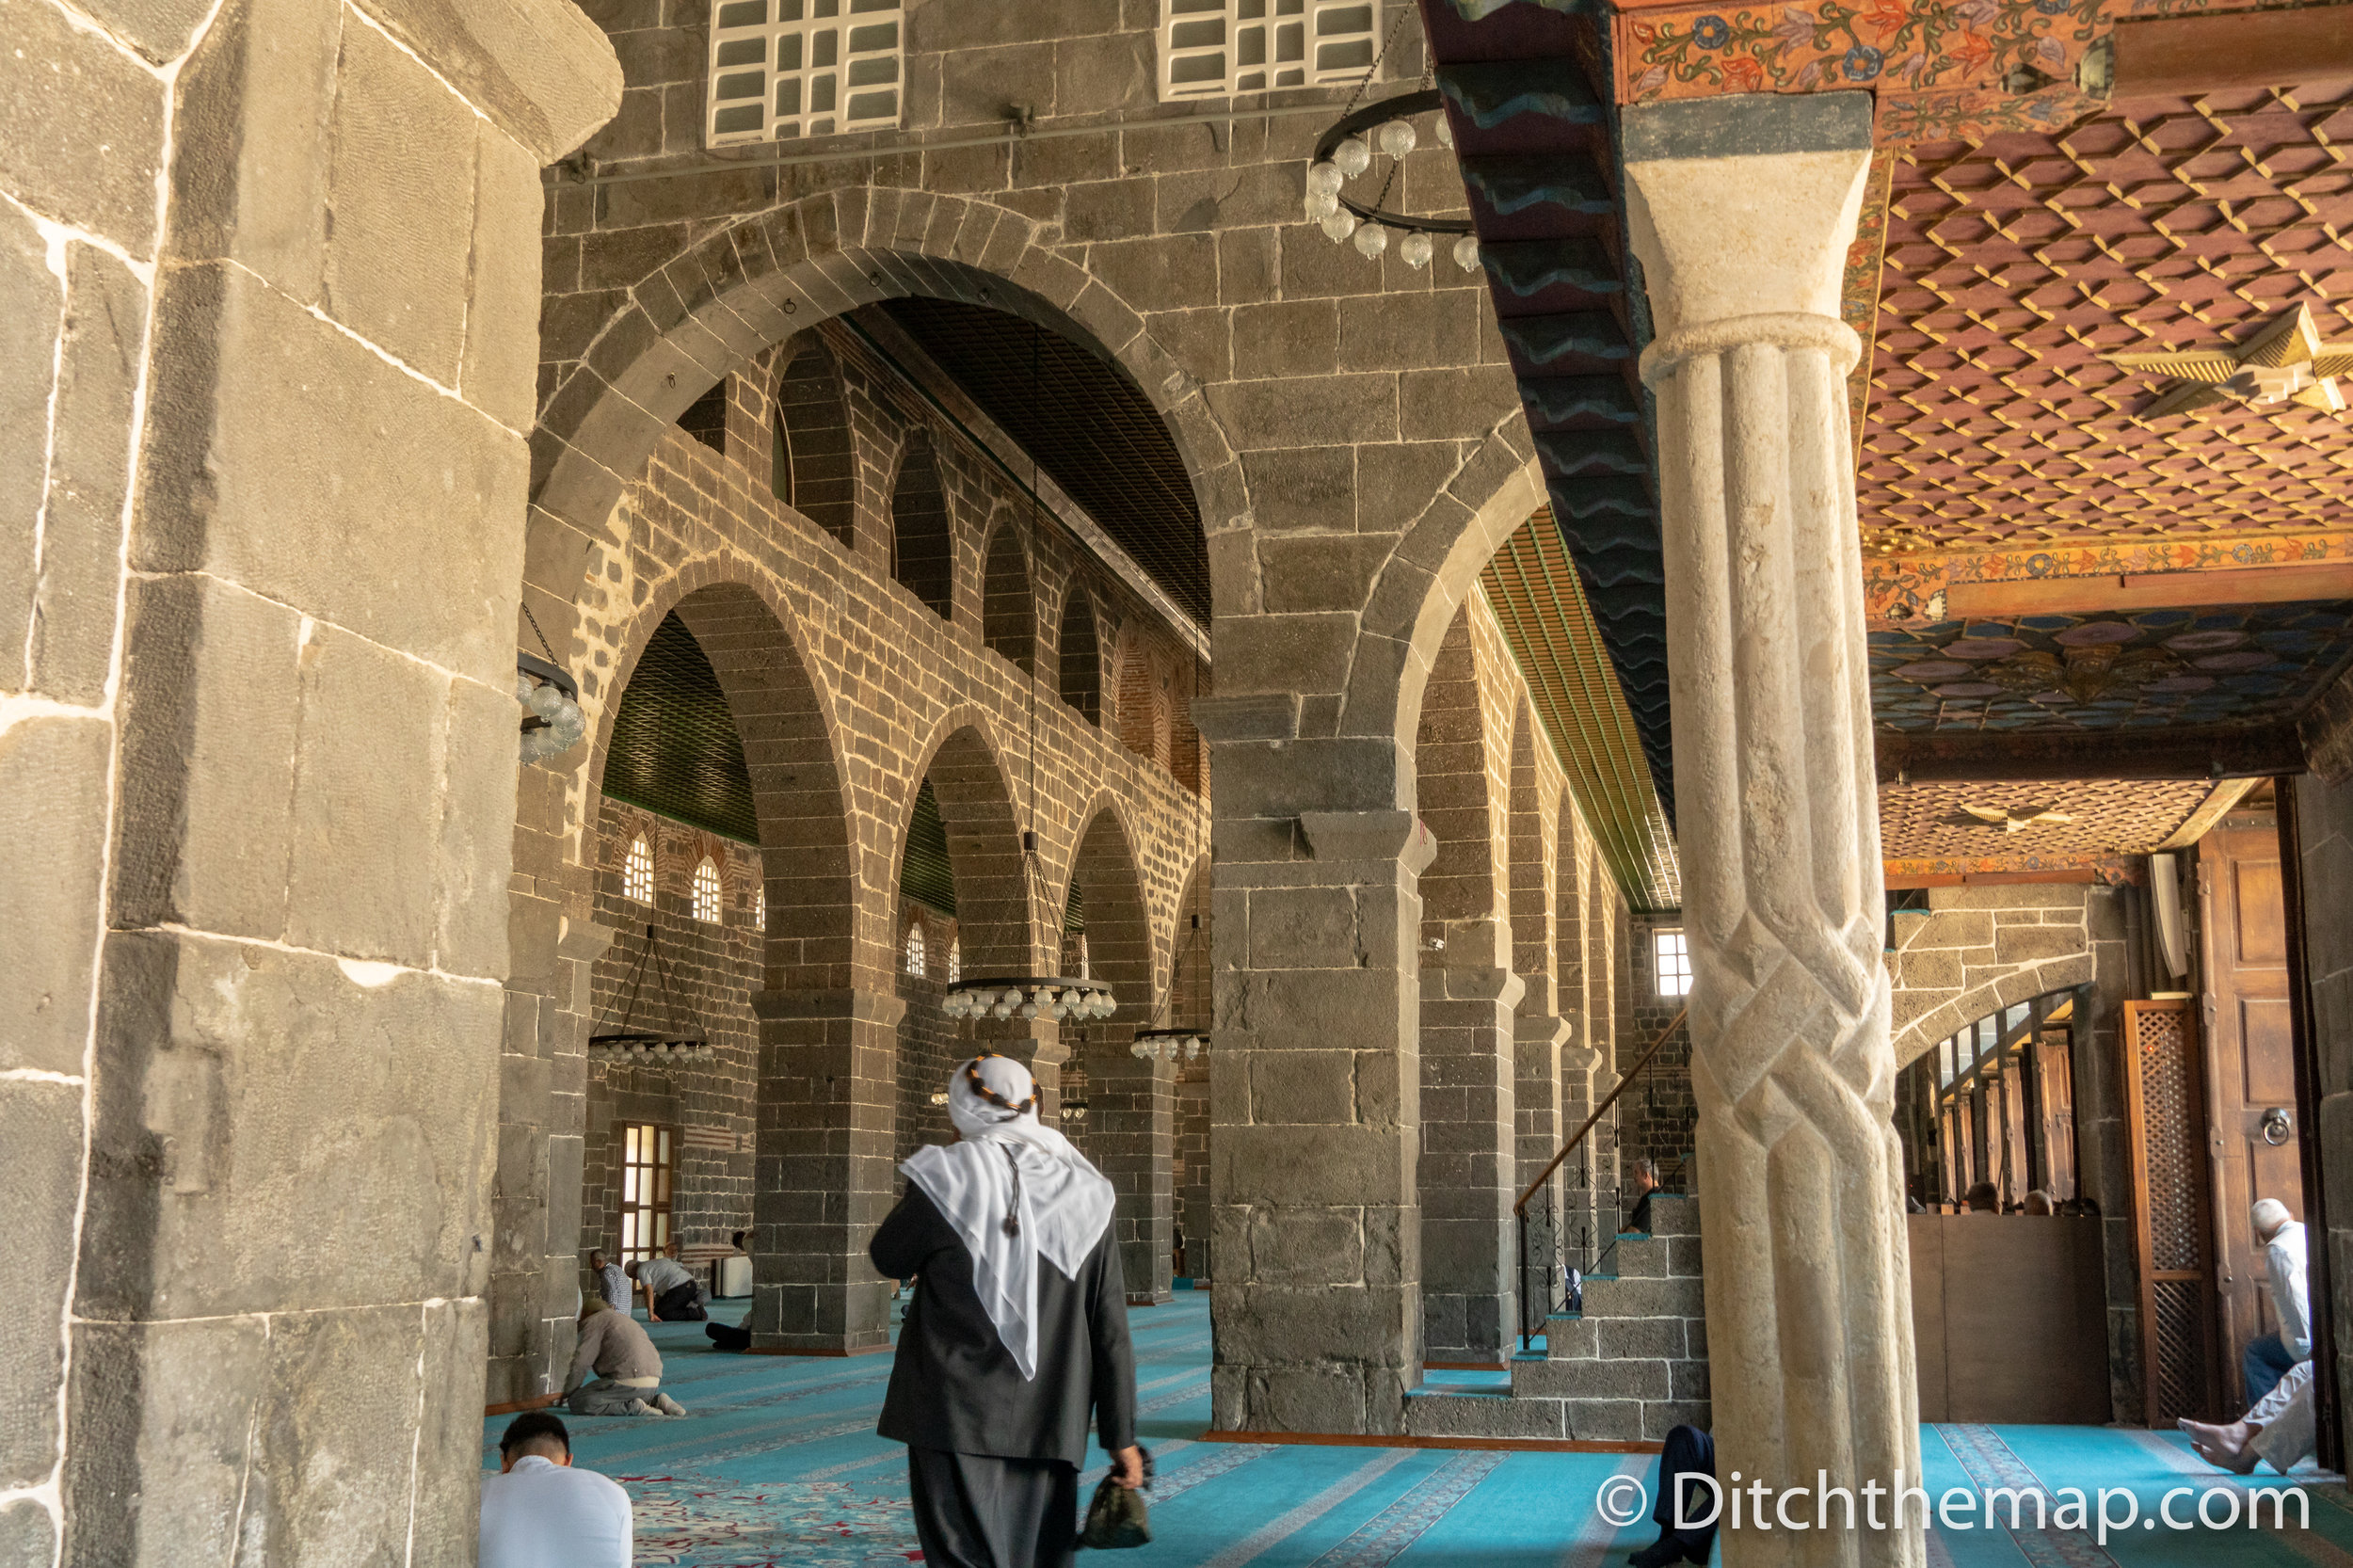 Inside Ulu Mosque in Diyarbakir